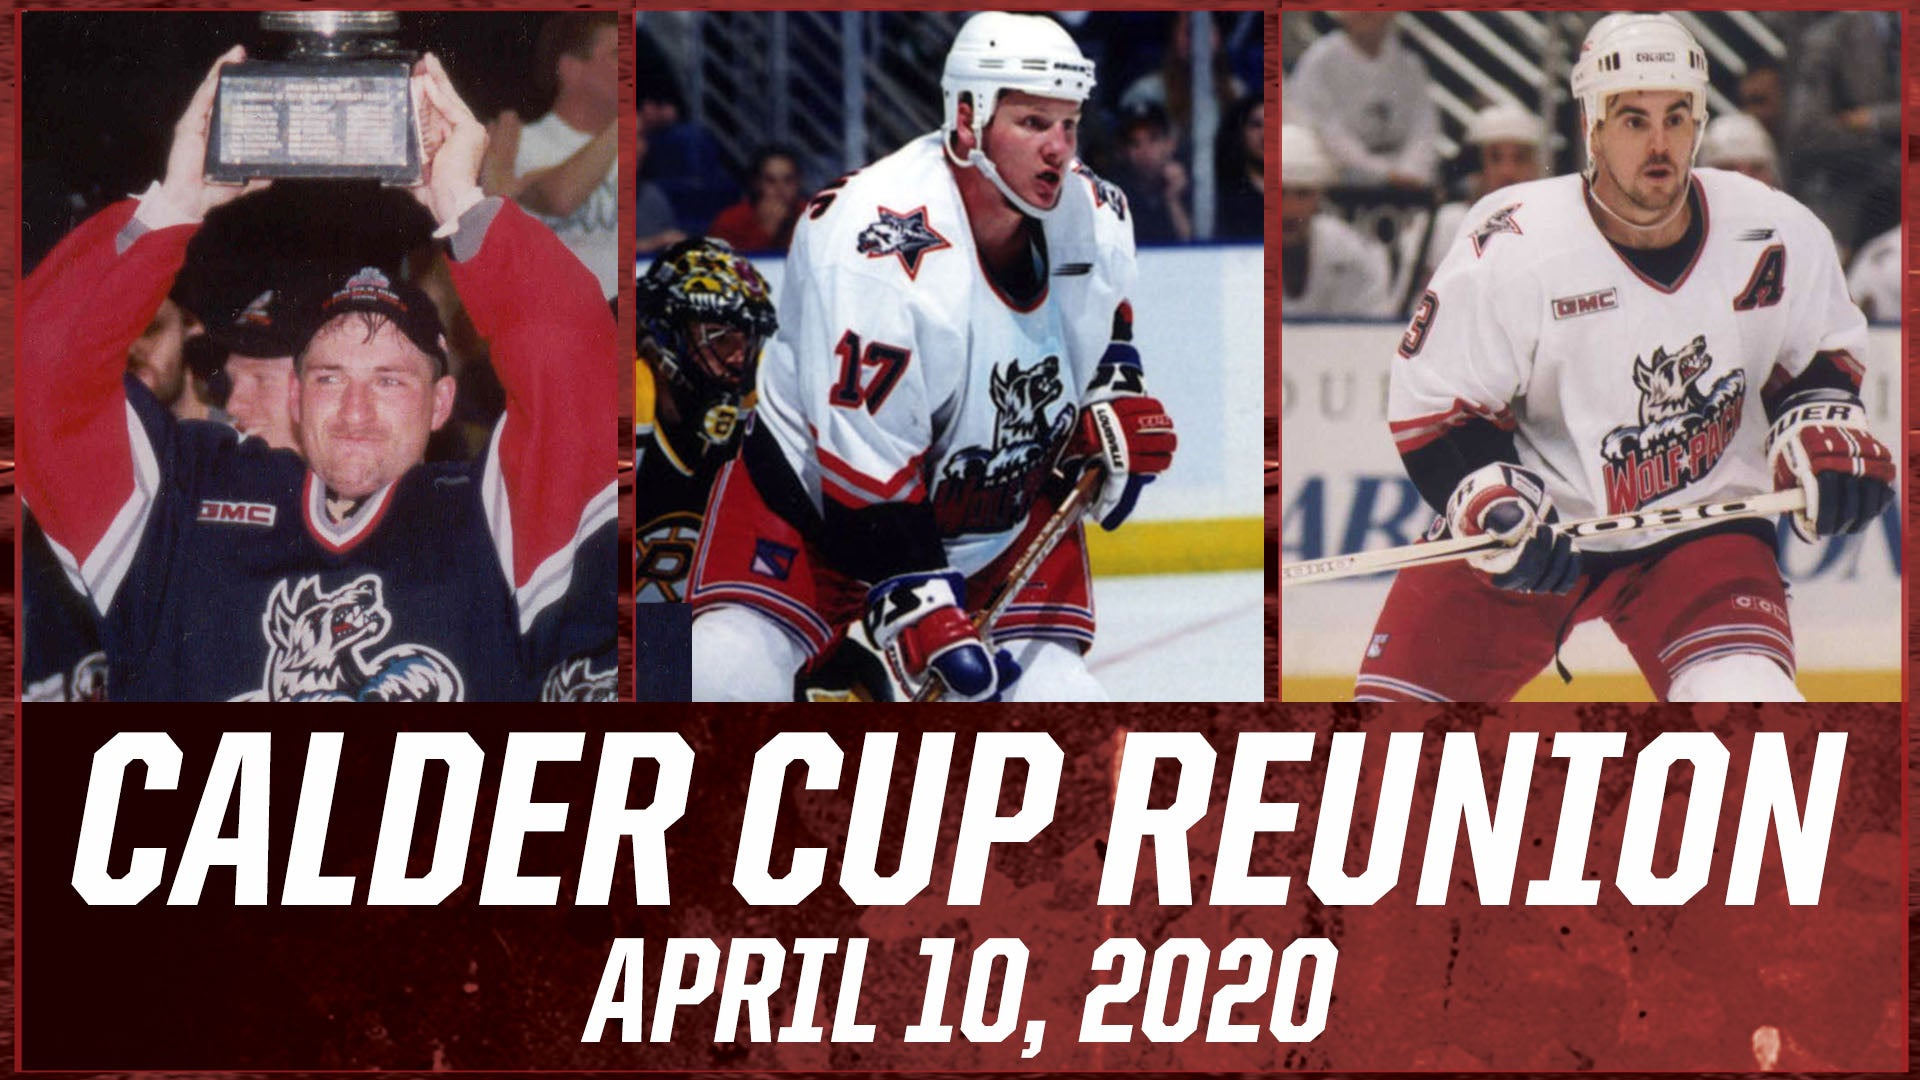 Wolf Pack to host Calder Cup Reunion Friday, April 10